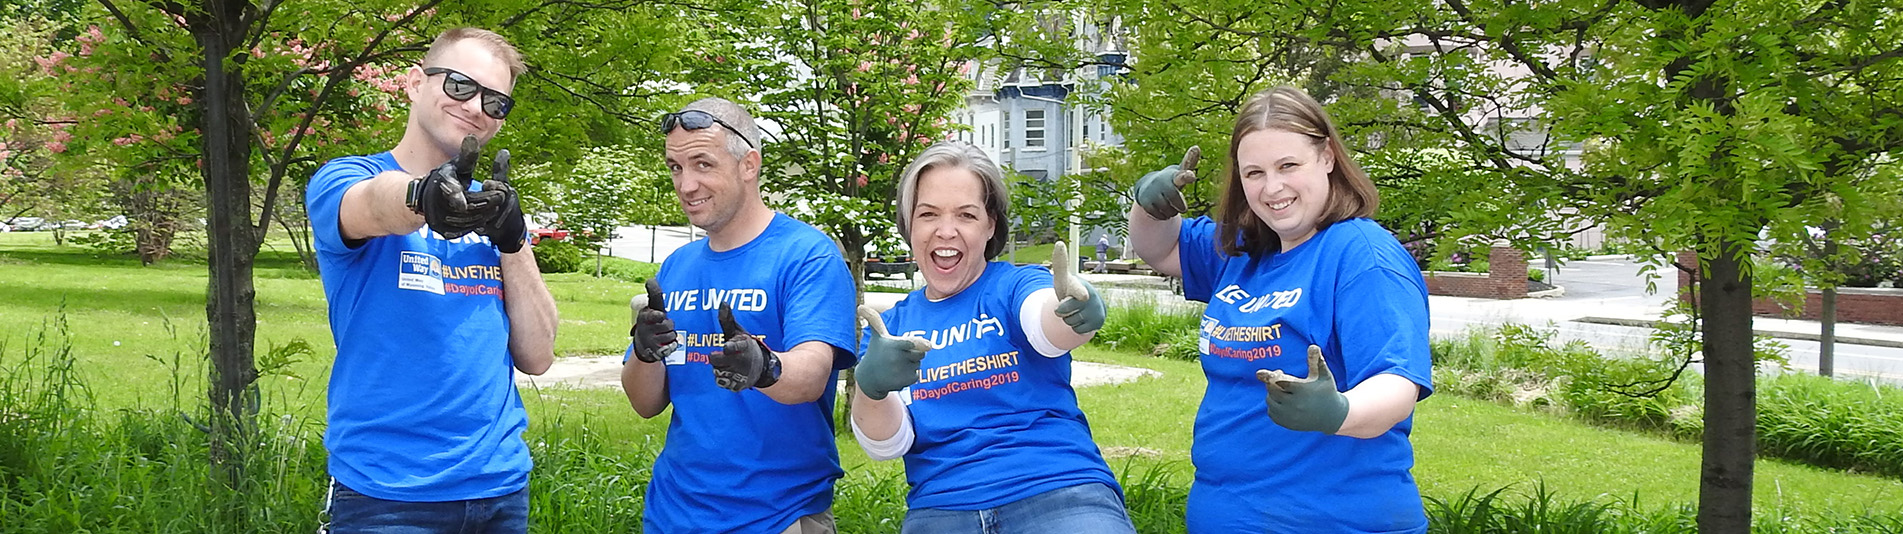 United Way of Wyoming Valley - Day of Caring - Cleaning up throughout the Wyoming Valley.